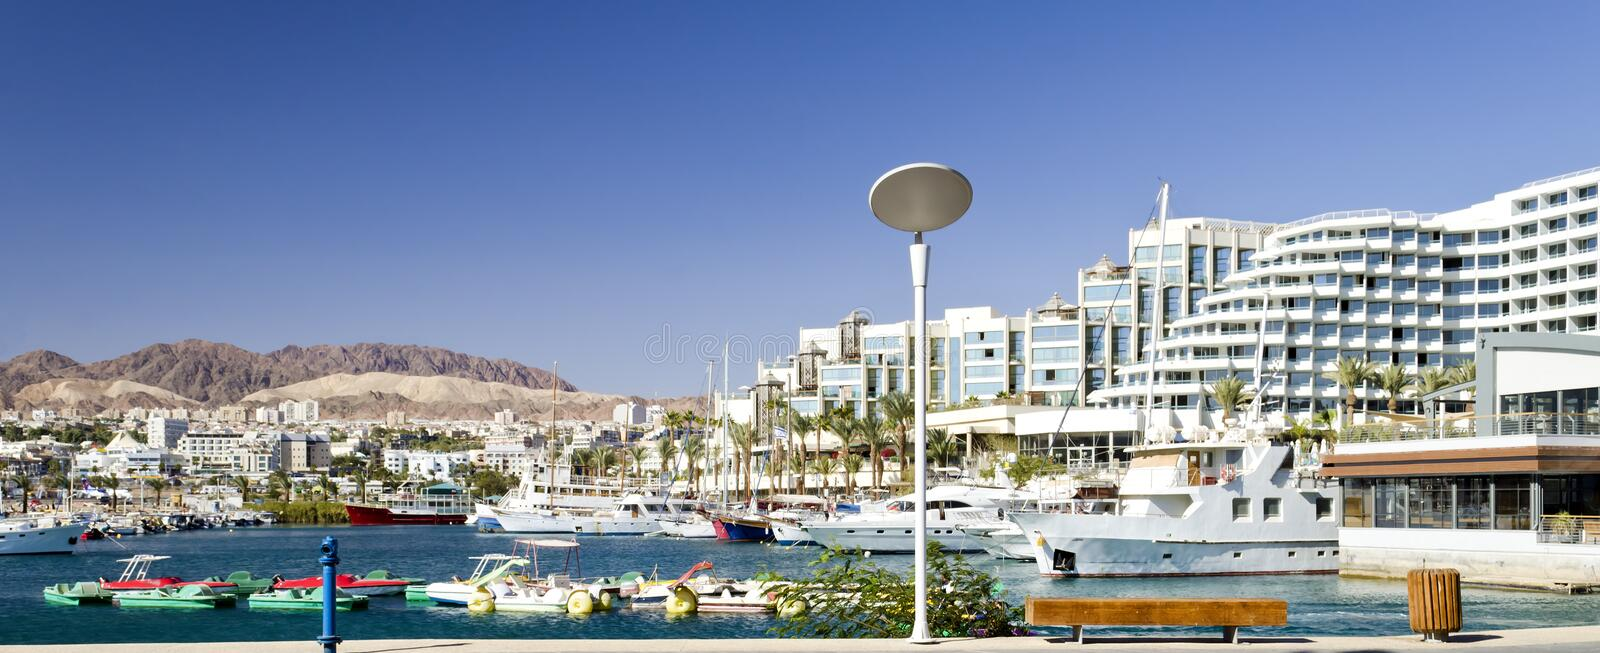 Marina near resort hotels in Eilat, Israel. The shot was taken at the northern beach of Eilat - popular resort city of Israel royalty free stock image